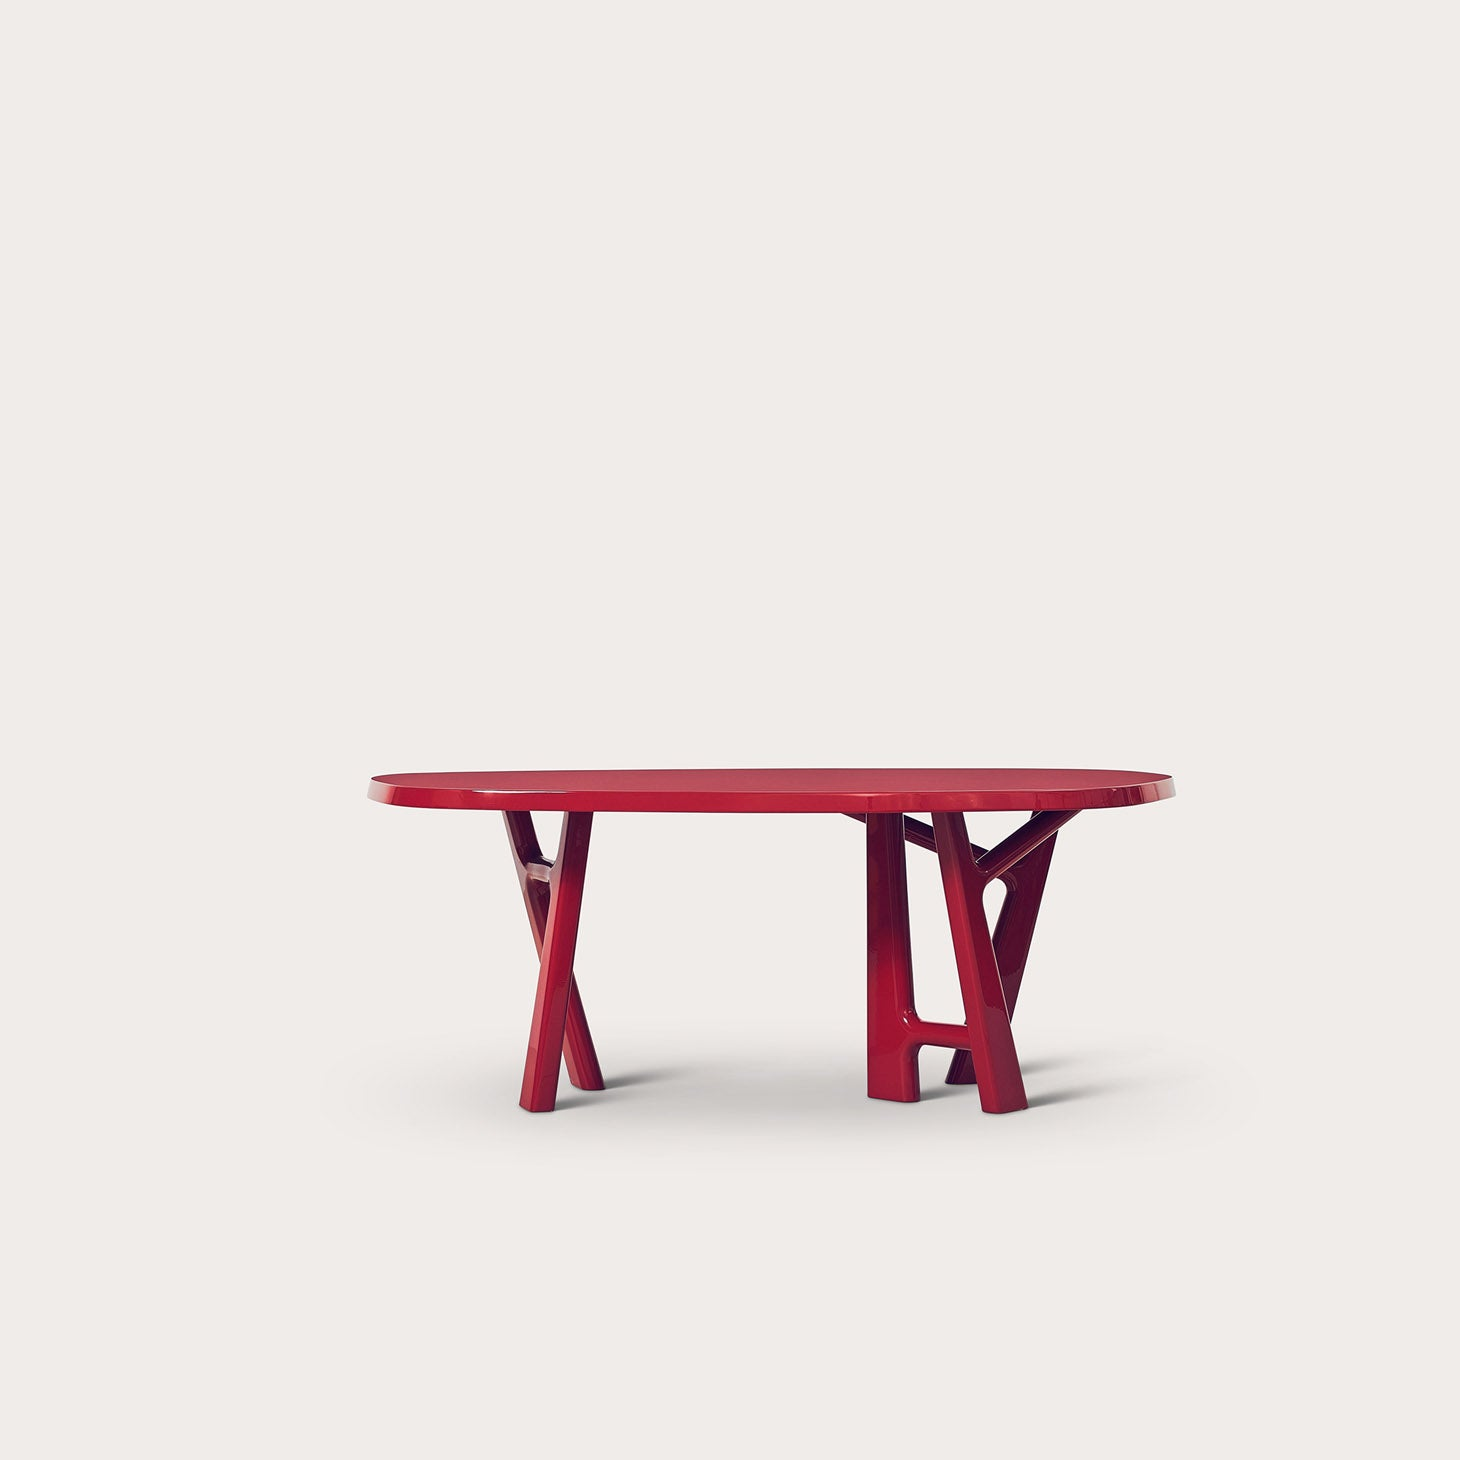 YBU Tables Jean-Pierre Tortil Designer Furniture Sku: 008-230-10133